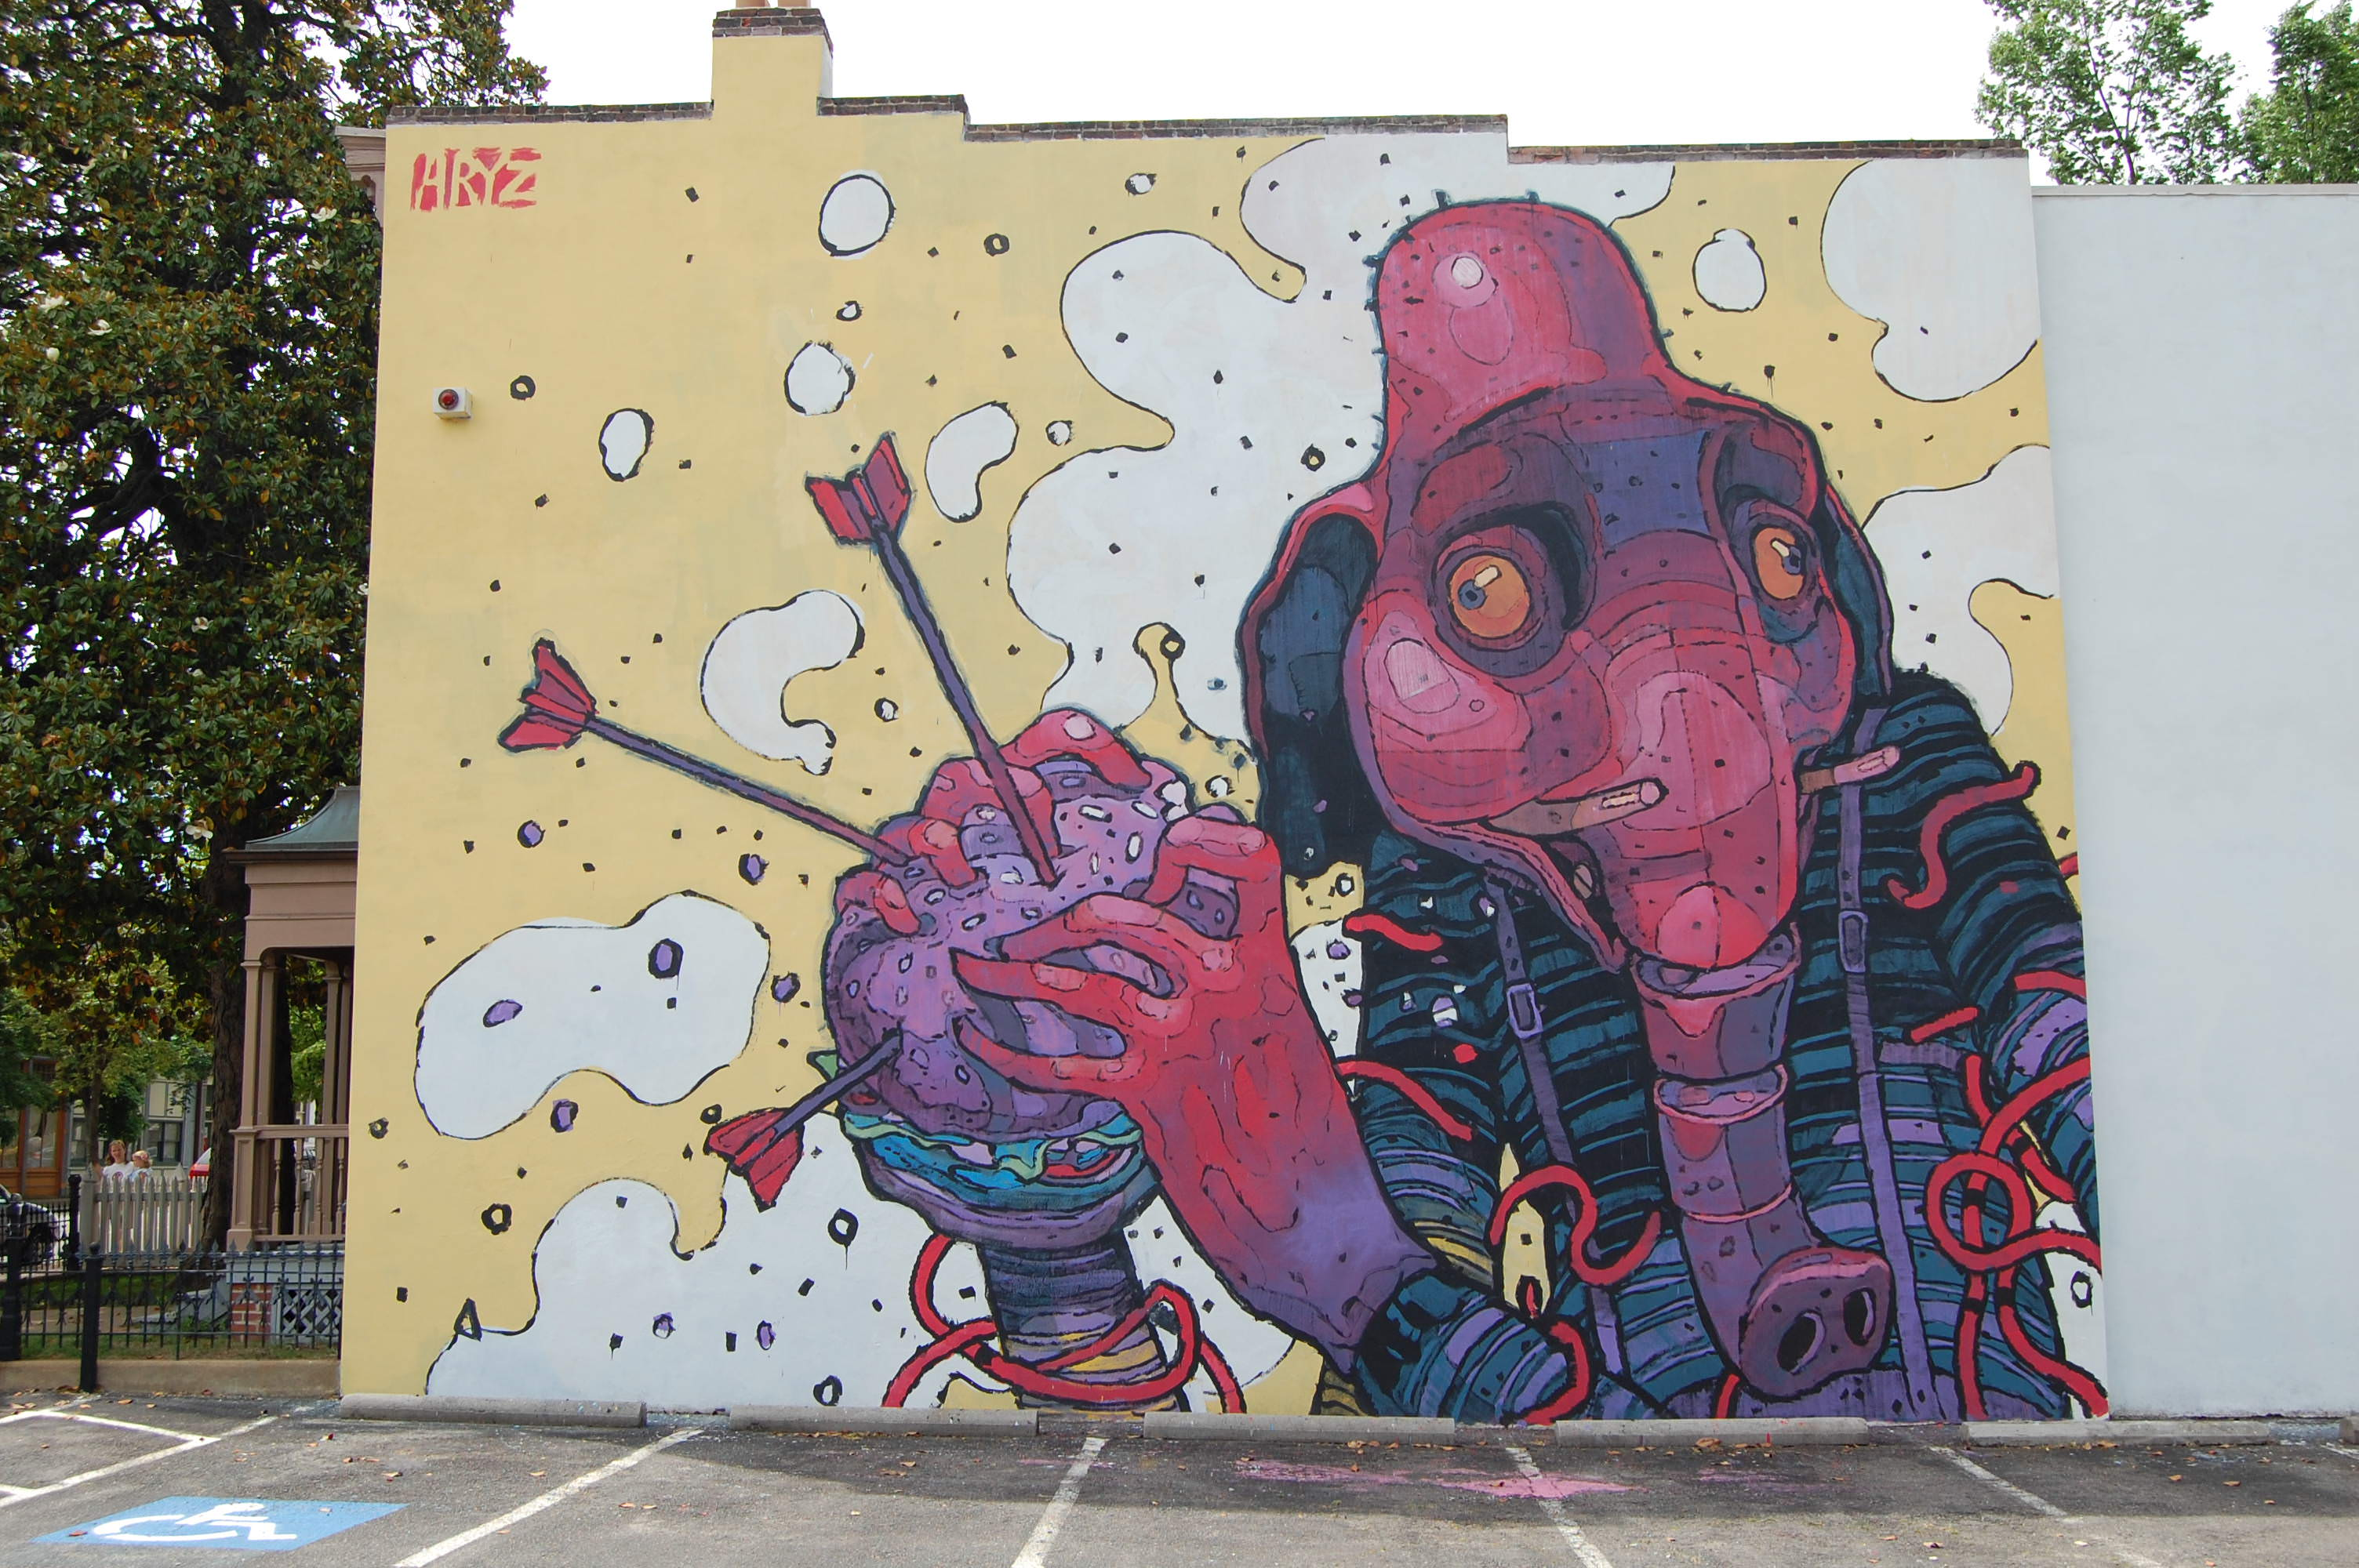 I wall paintings di Aryz